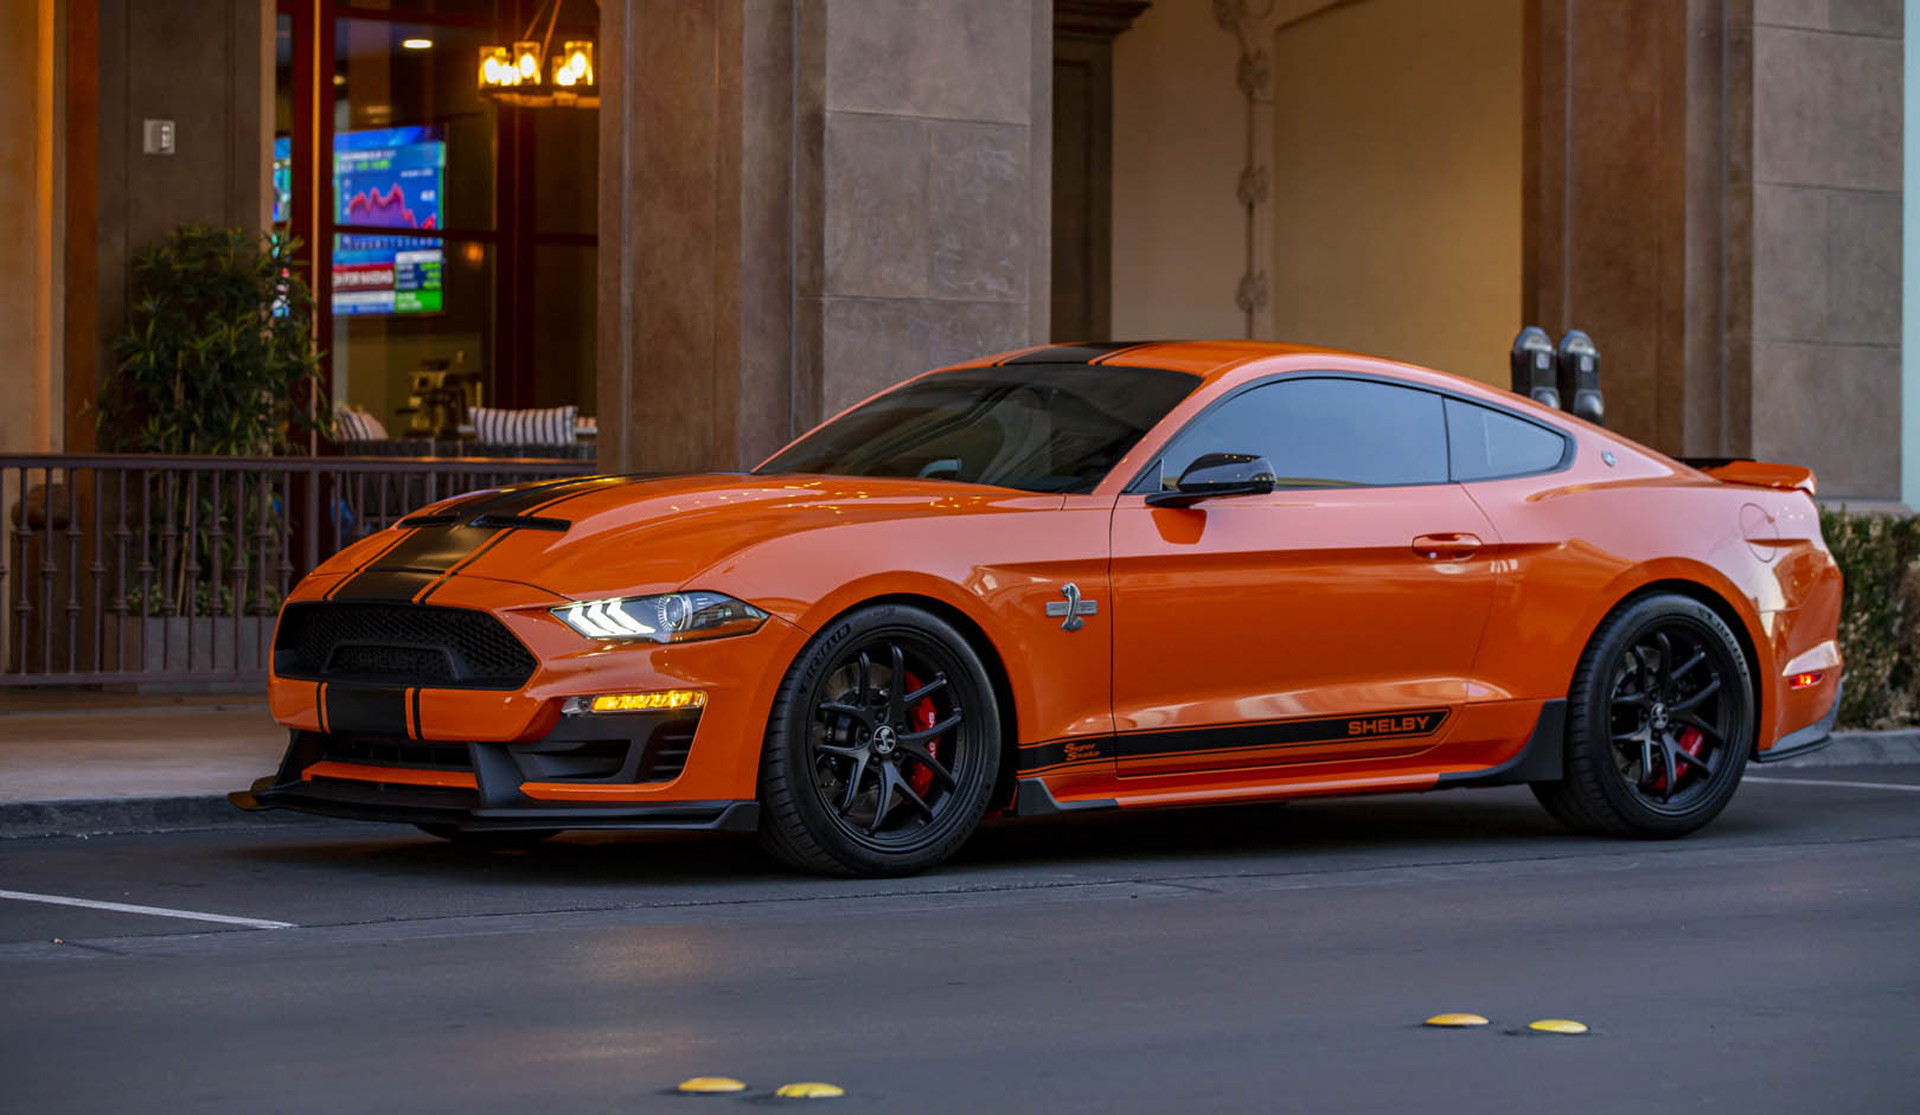 2020 ford shelby super snake delivers up 825 horsepower